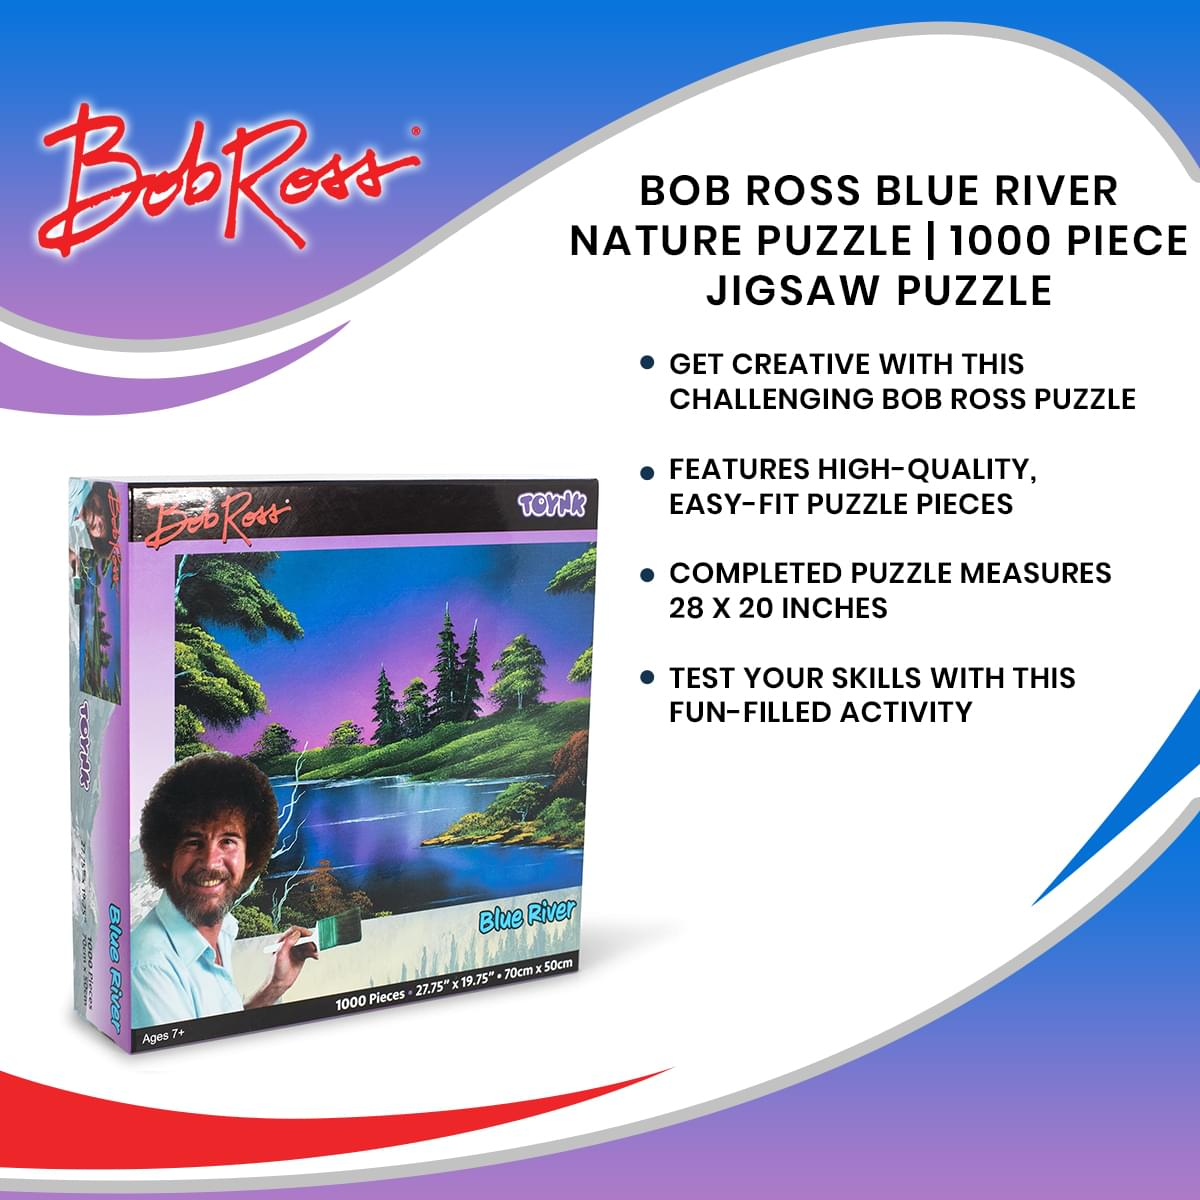 28 x 20 Inches Forest Lake Scenery 1000 Piece Jigsaw Puzzle Toy Bob Ross Blue River Nature Puzzle for Adults and Kids Interactive Brain Teaser for Family Game Night